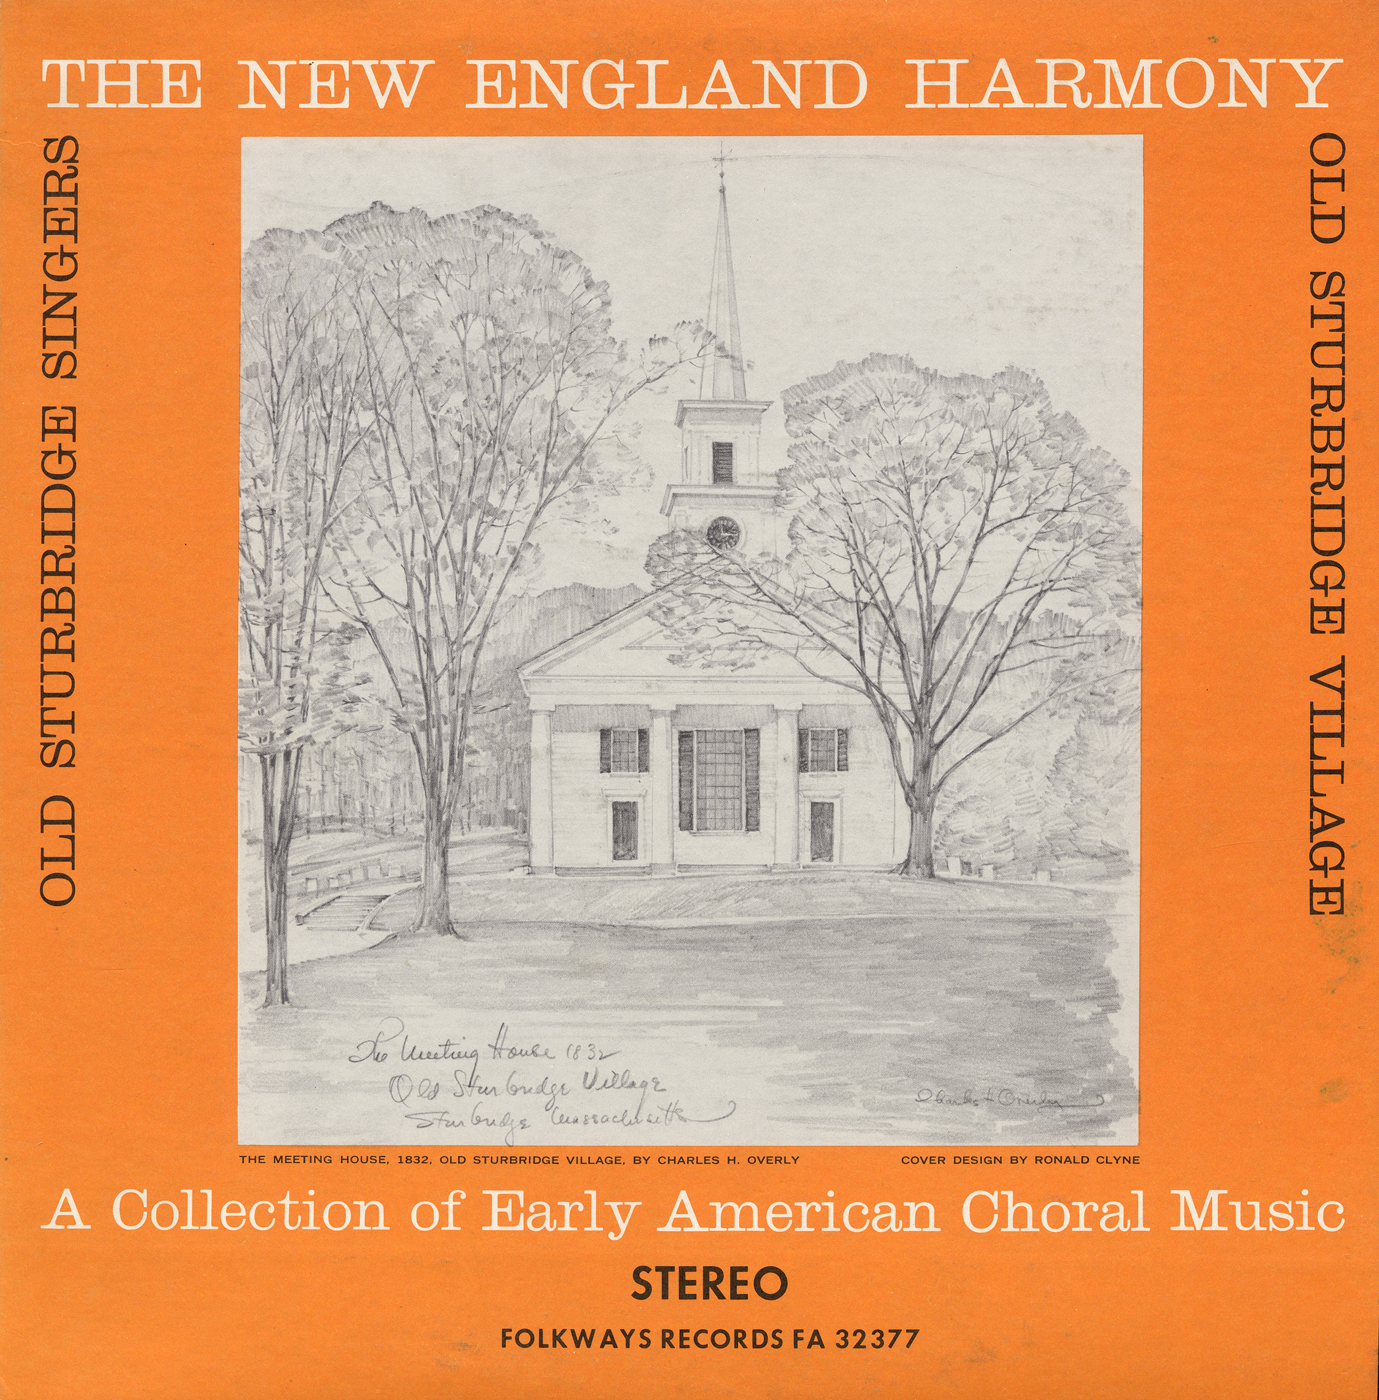 New England Harmony: A Collection of Early American Choral